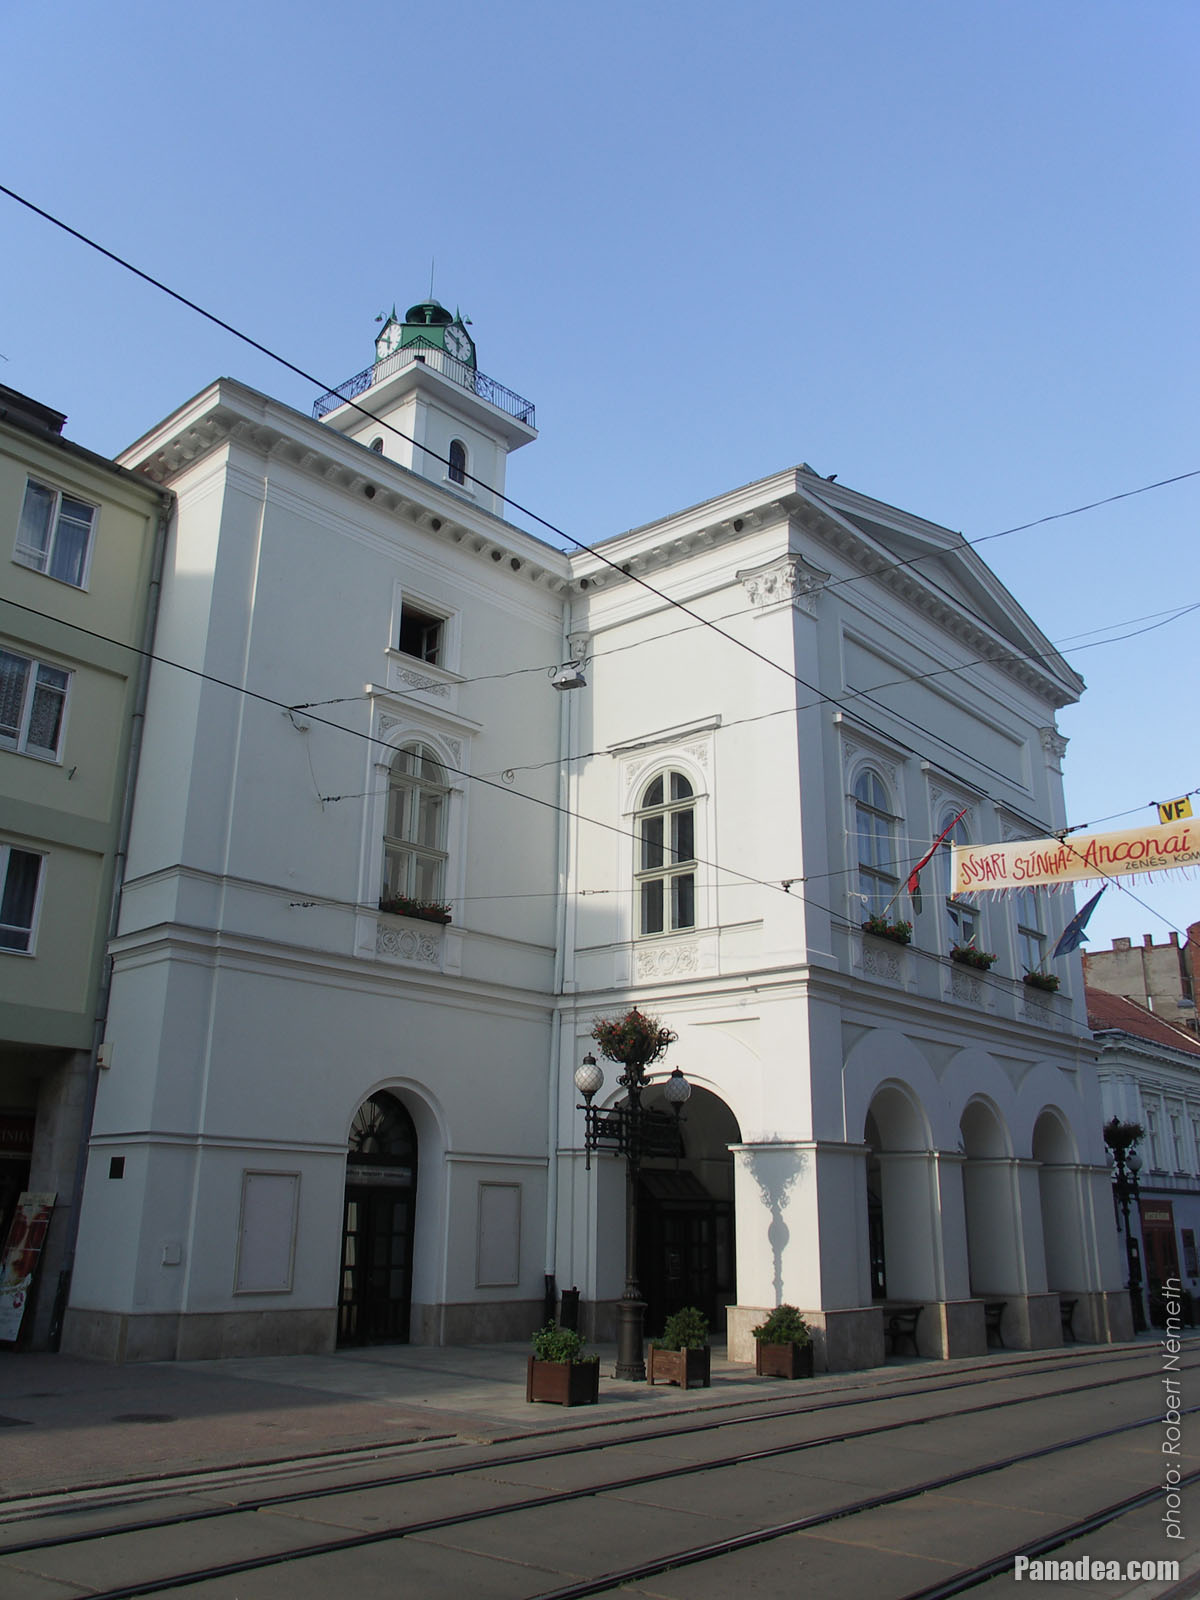 miskolc dating The miskolc opera festival or international opera festival  the main venue is the national theatre of miskolc, the current building dating from 1847 the main.